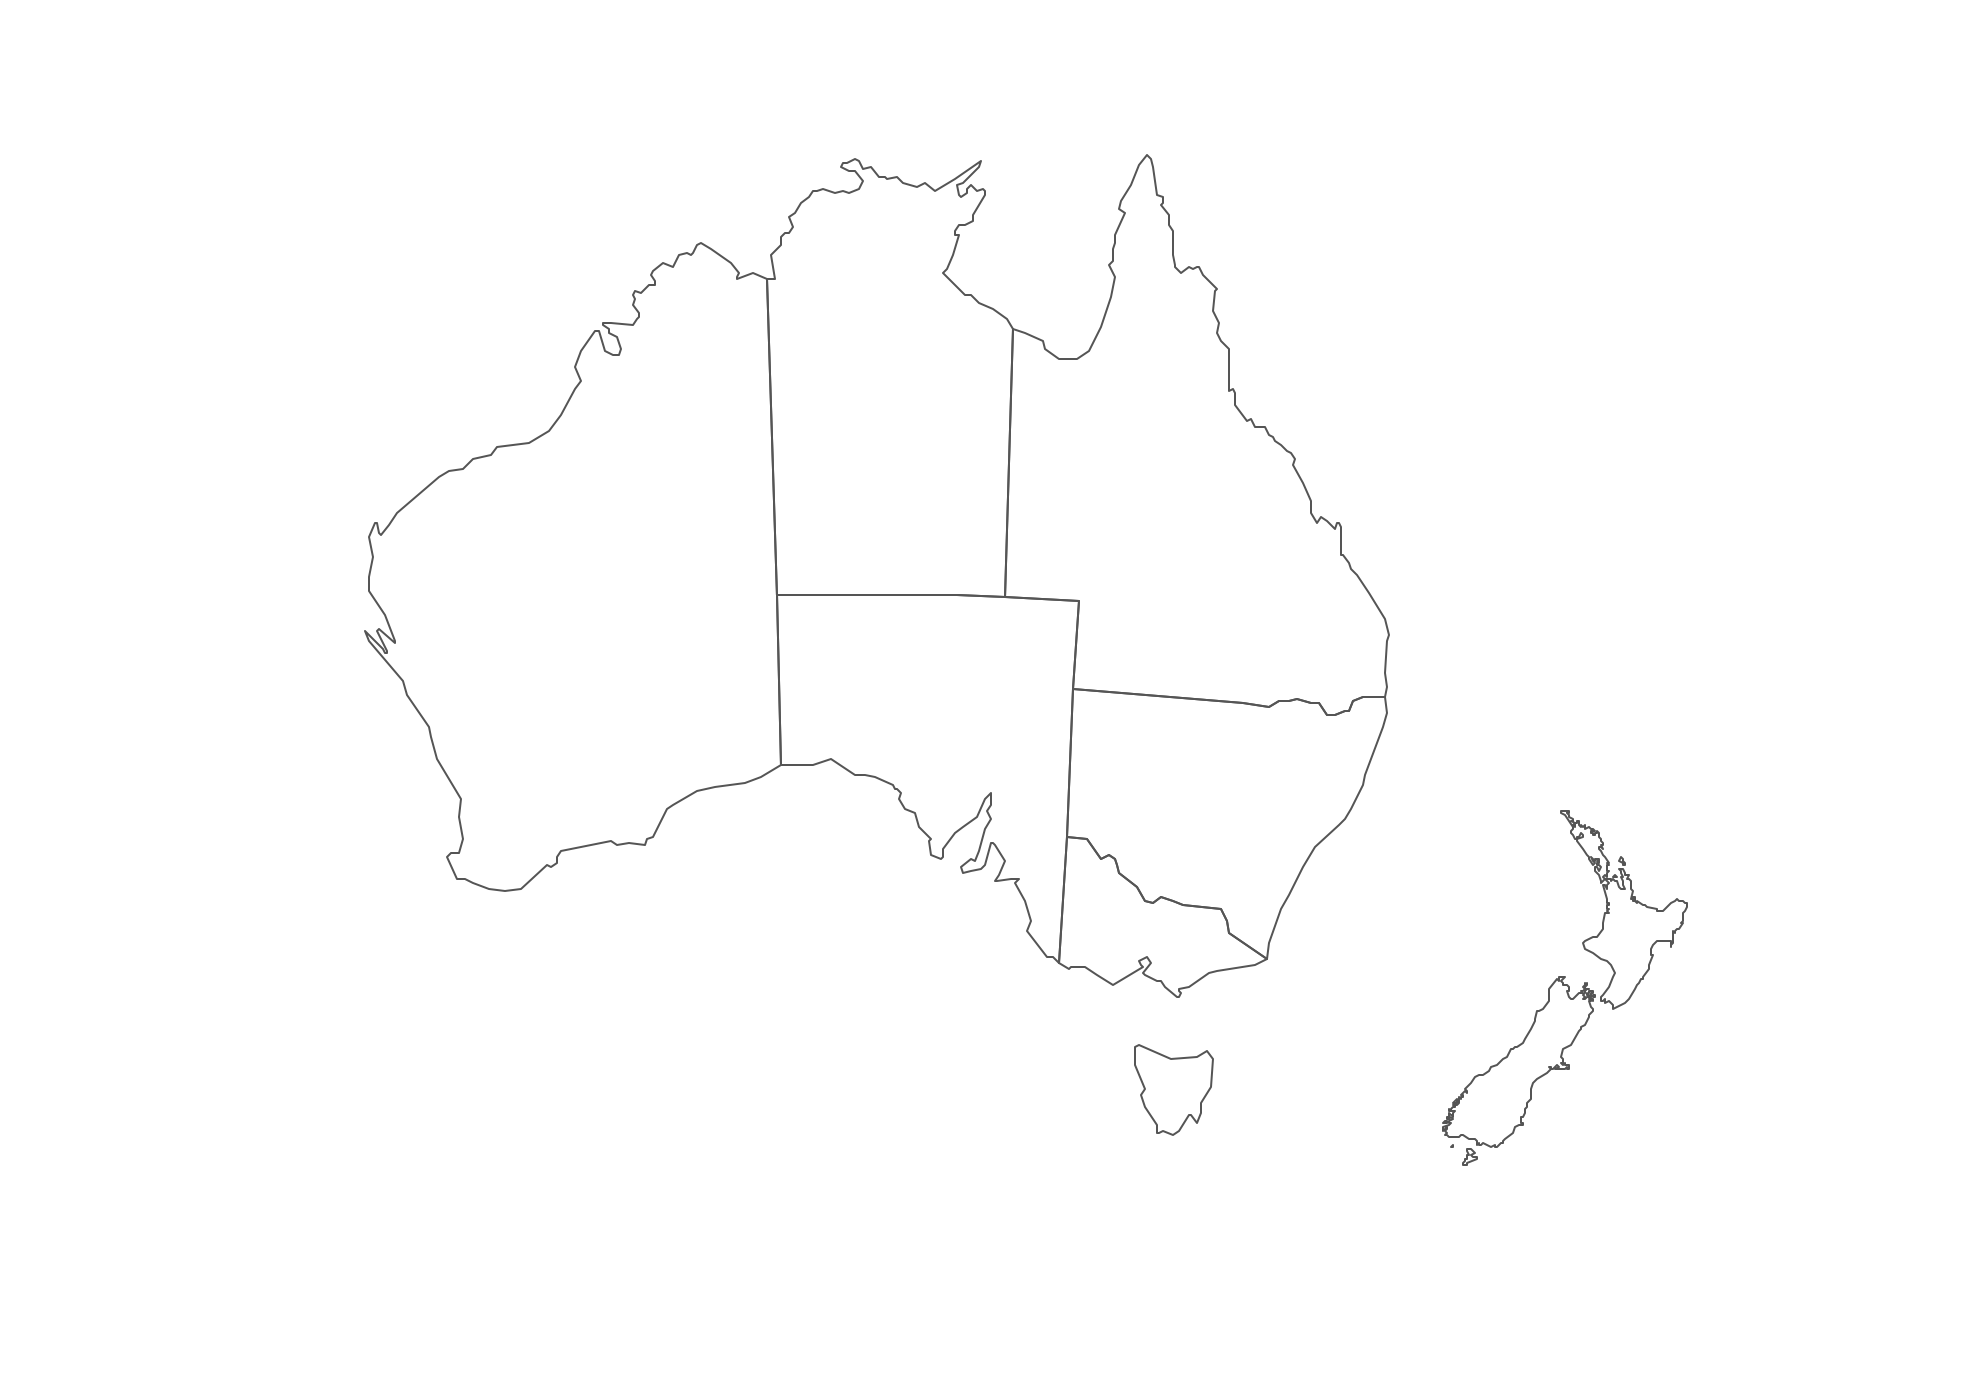 Map Of Australia Tasmania And New Zealand.Geo Map Australia Tasmania